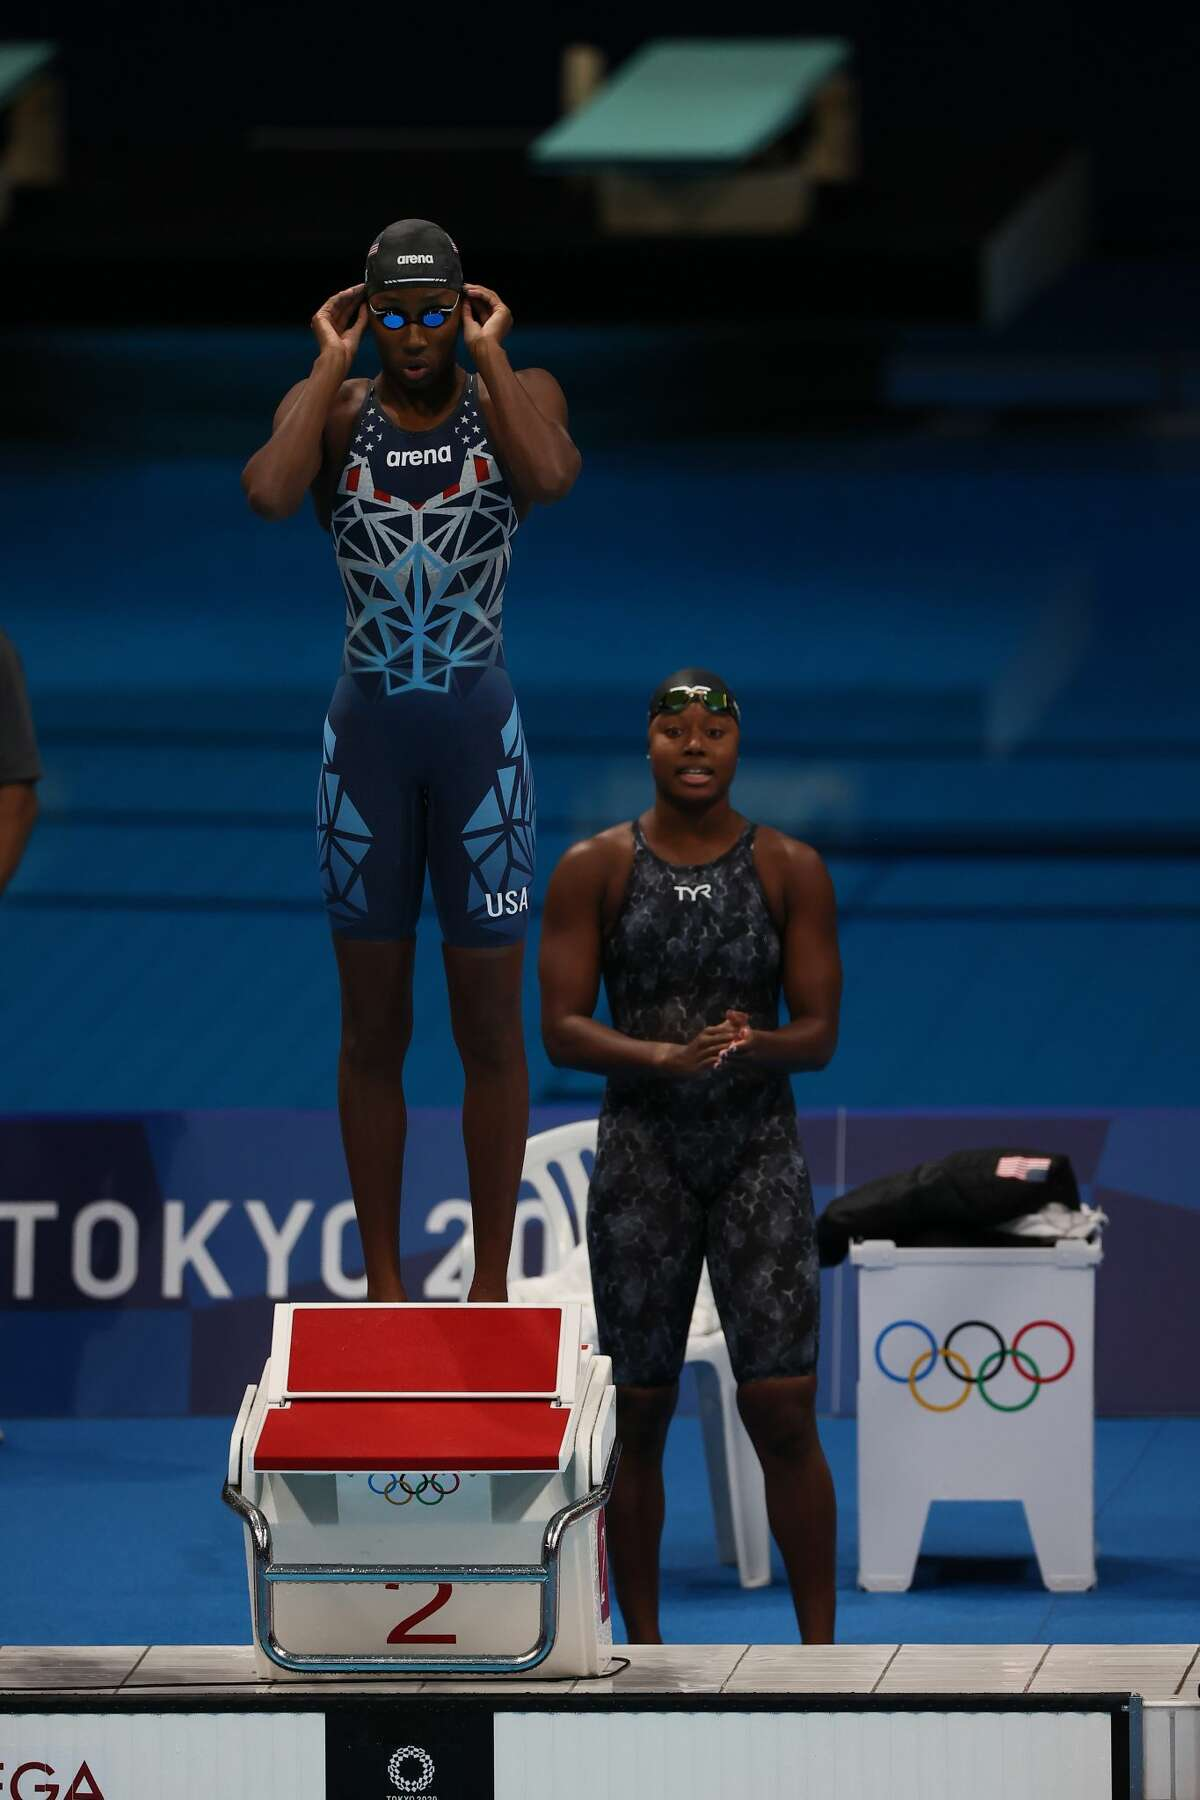 TOKYO, JAPAN - JULY 25: Natalie Hinds and Simone Manuel of Team United States look on during the Women's 4 x 100m Freestyle Relay Final on day two of the Tokyo 2020 Olympic Games at Tokyo Aquatics Centre on July 25, 2021 in Tokyo, Japan. (Photo by Tom Pennington/Getty Images)